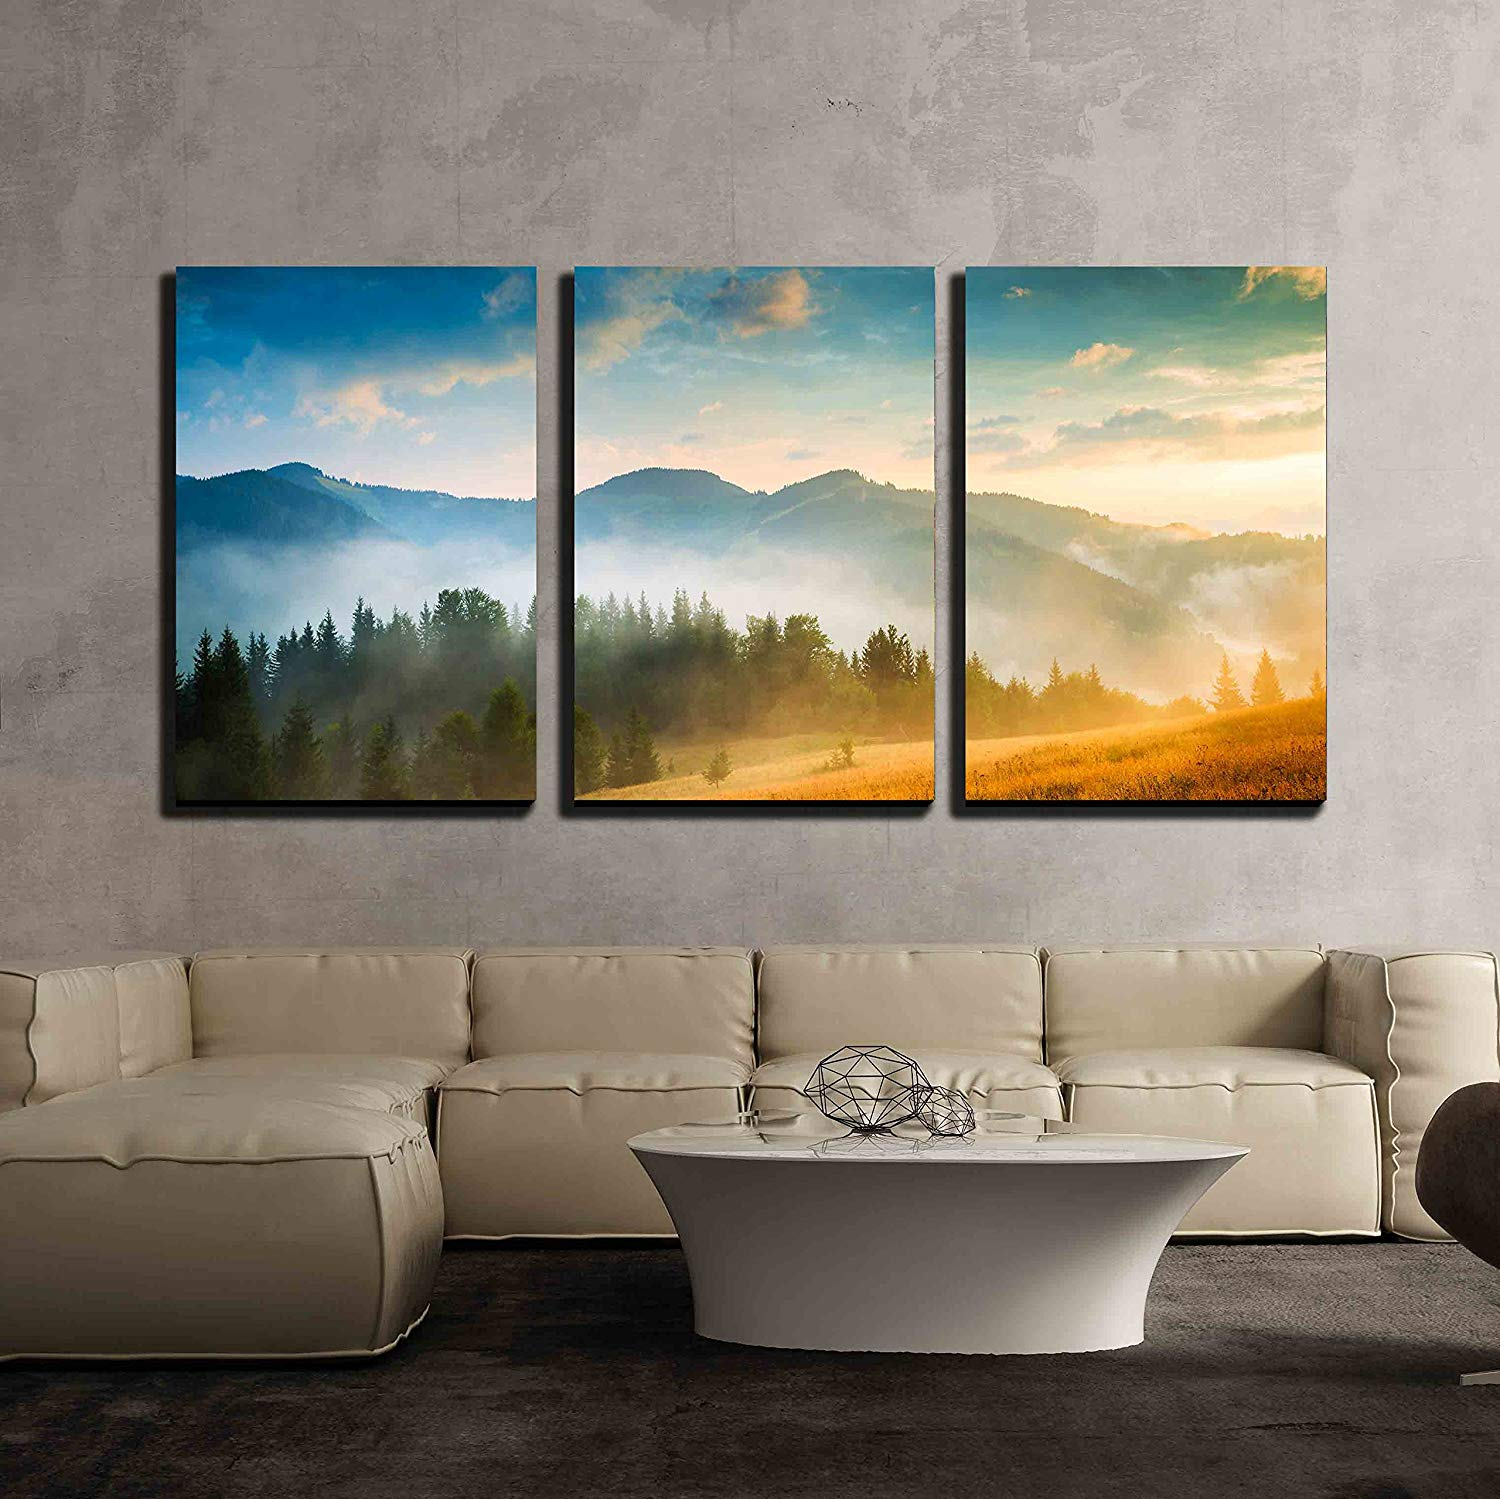 """wall26 - 3 Piece Canvas Wall Art - Amazing Mountain Landscape with Fog and a Haystack - Modern Home Decor Stretched and Framed Ready to Hang - 16""""x24""""x3 Panels"""